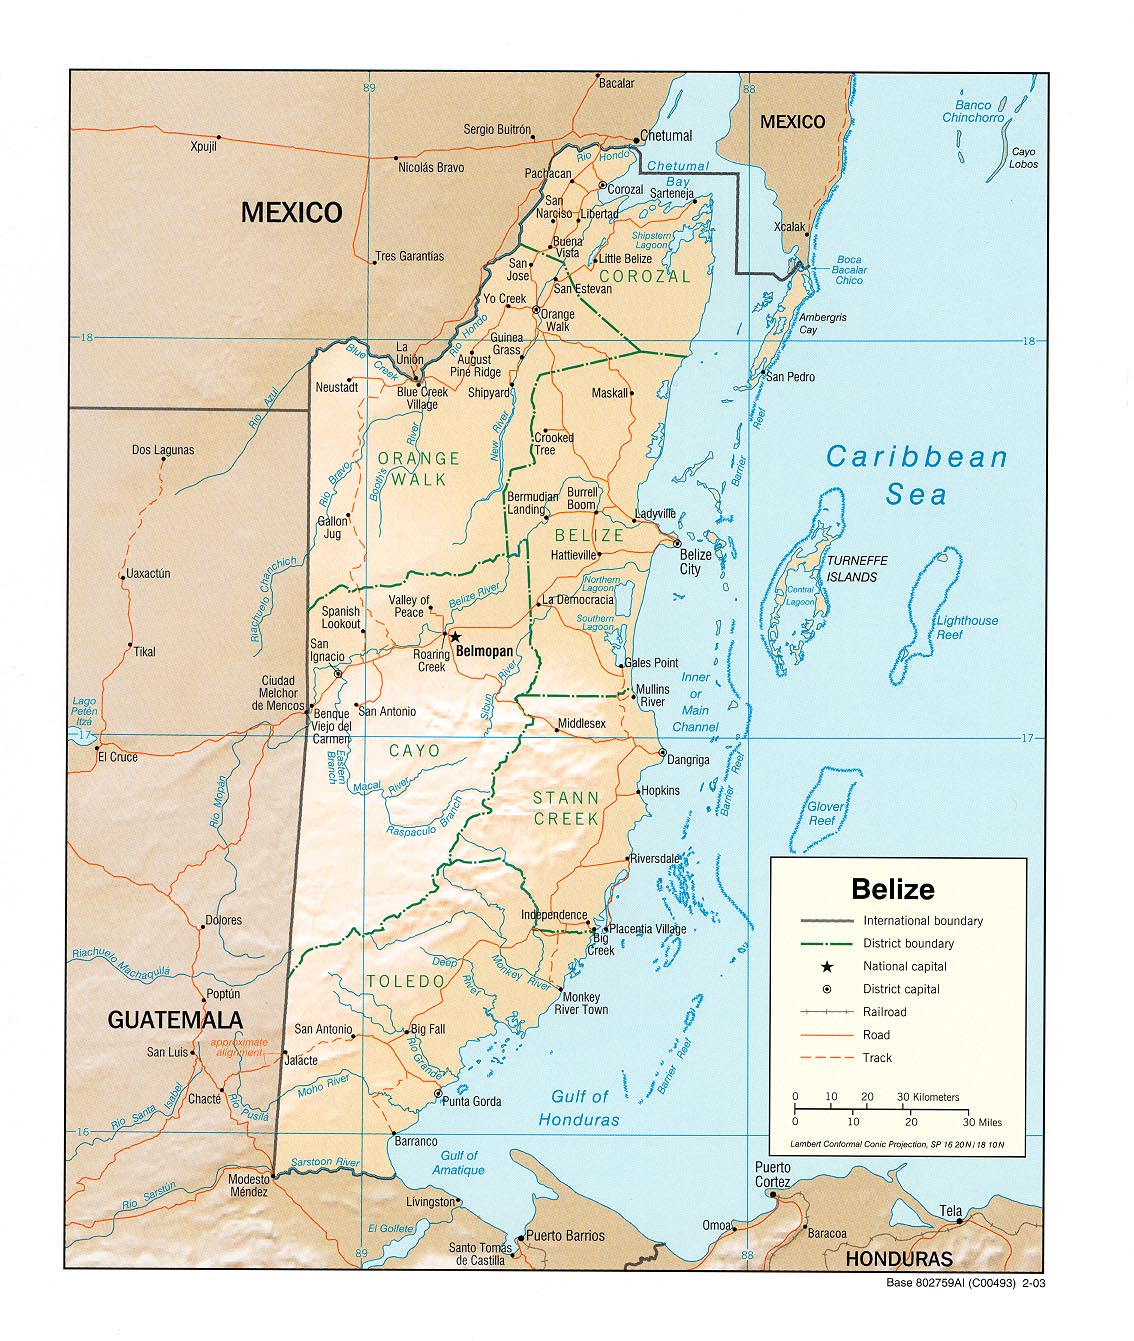 belize map belize map 1134 x 1341 size